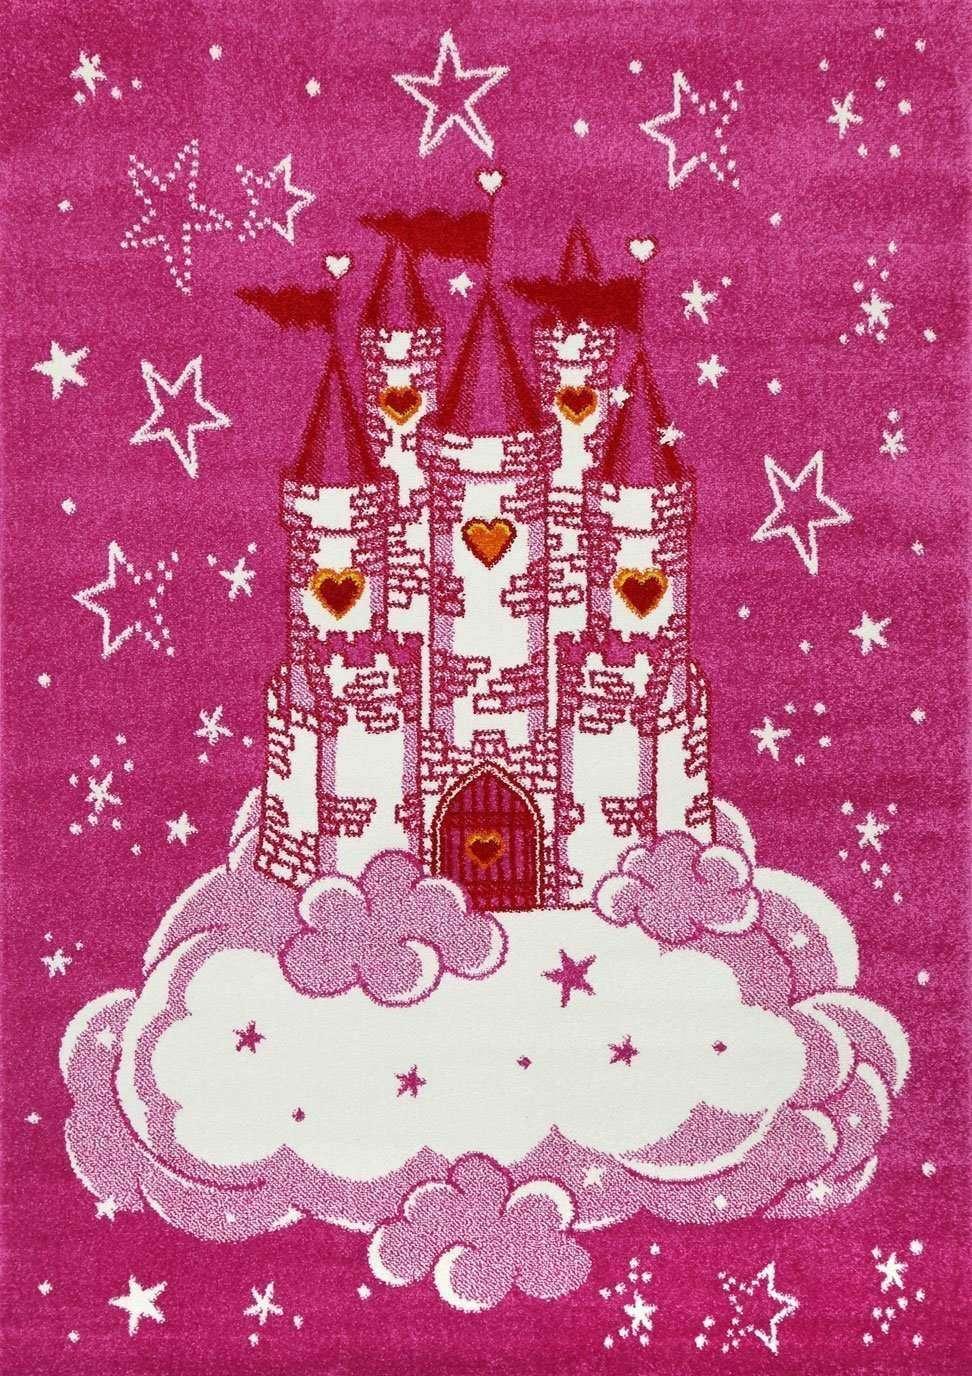 Poppins Pink Castle Rug, [cheapest rugs online], [au rugs], [rugs australia]